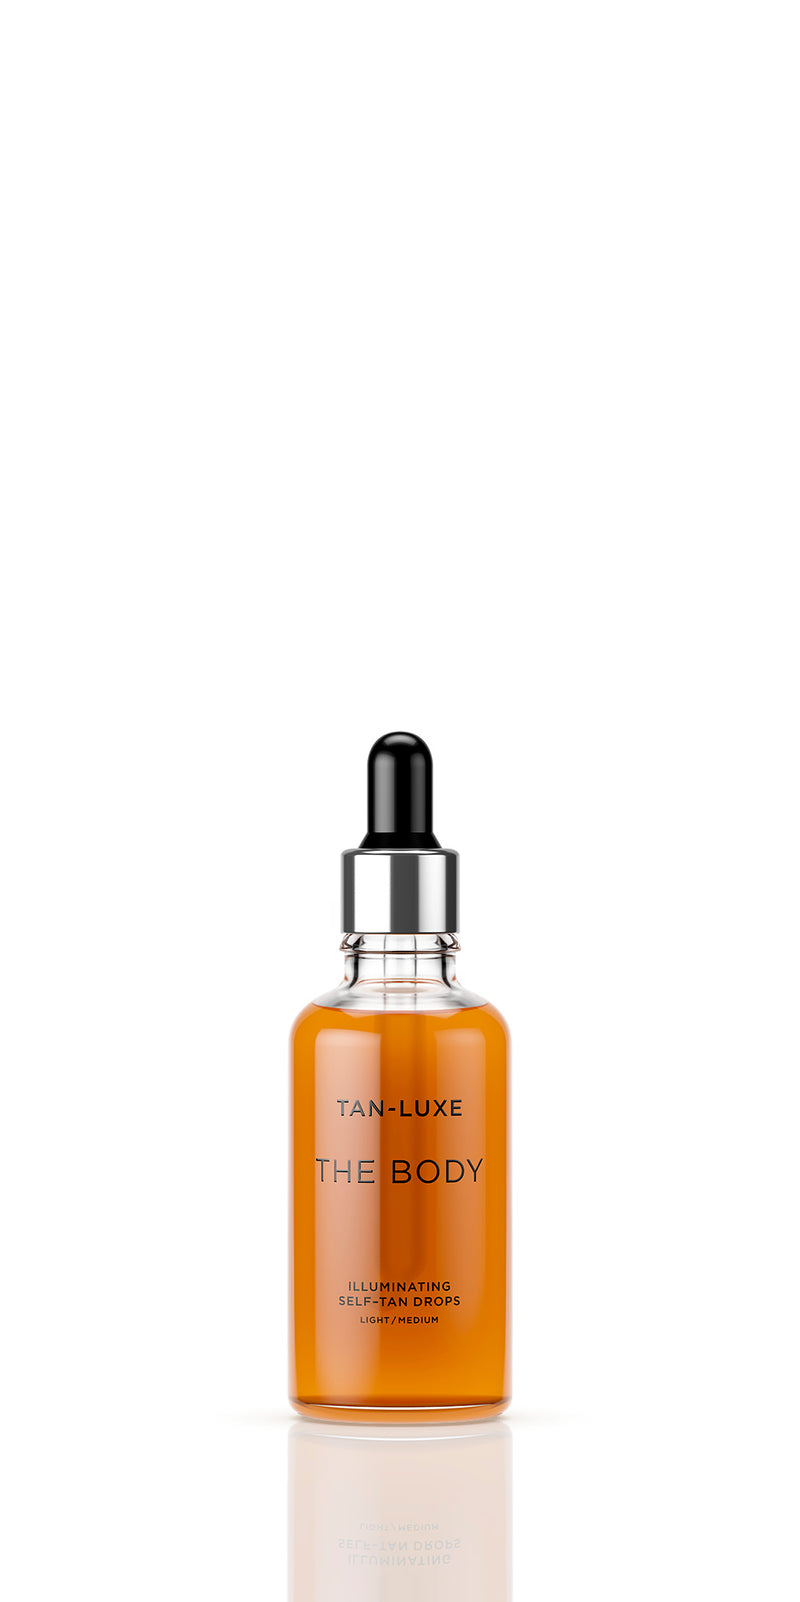 The Body Light/Medium 15ml